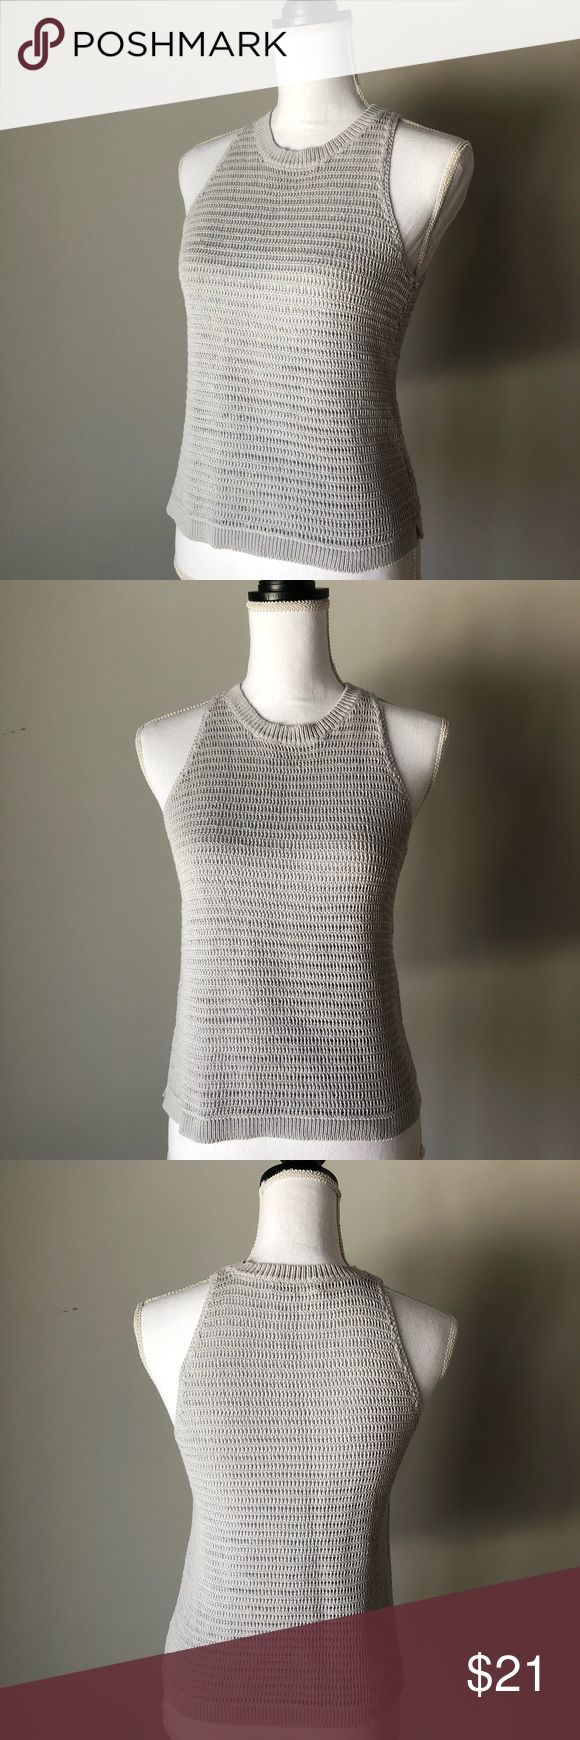 Madewell Crochet sleeveless top/ tank grey Madewell Crochet tank in great condition. No pulls or stains. I've attached pictures of front and back of top from all angles to see detailed crocheting. Pair with rolled up jeans and some cool footwear or shorts/dress/ skirt!. Check out the jeans and dark brown gladiator sandals in my closet to create a nice bundle to save. Madewell Tops